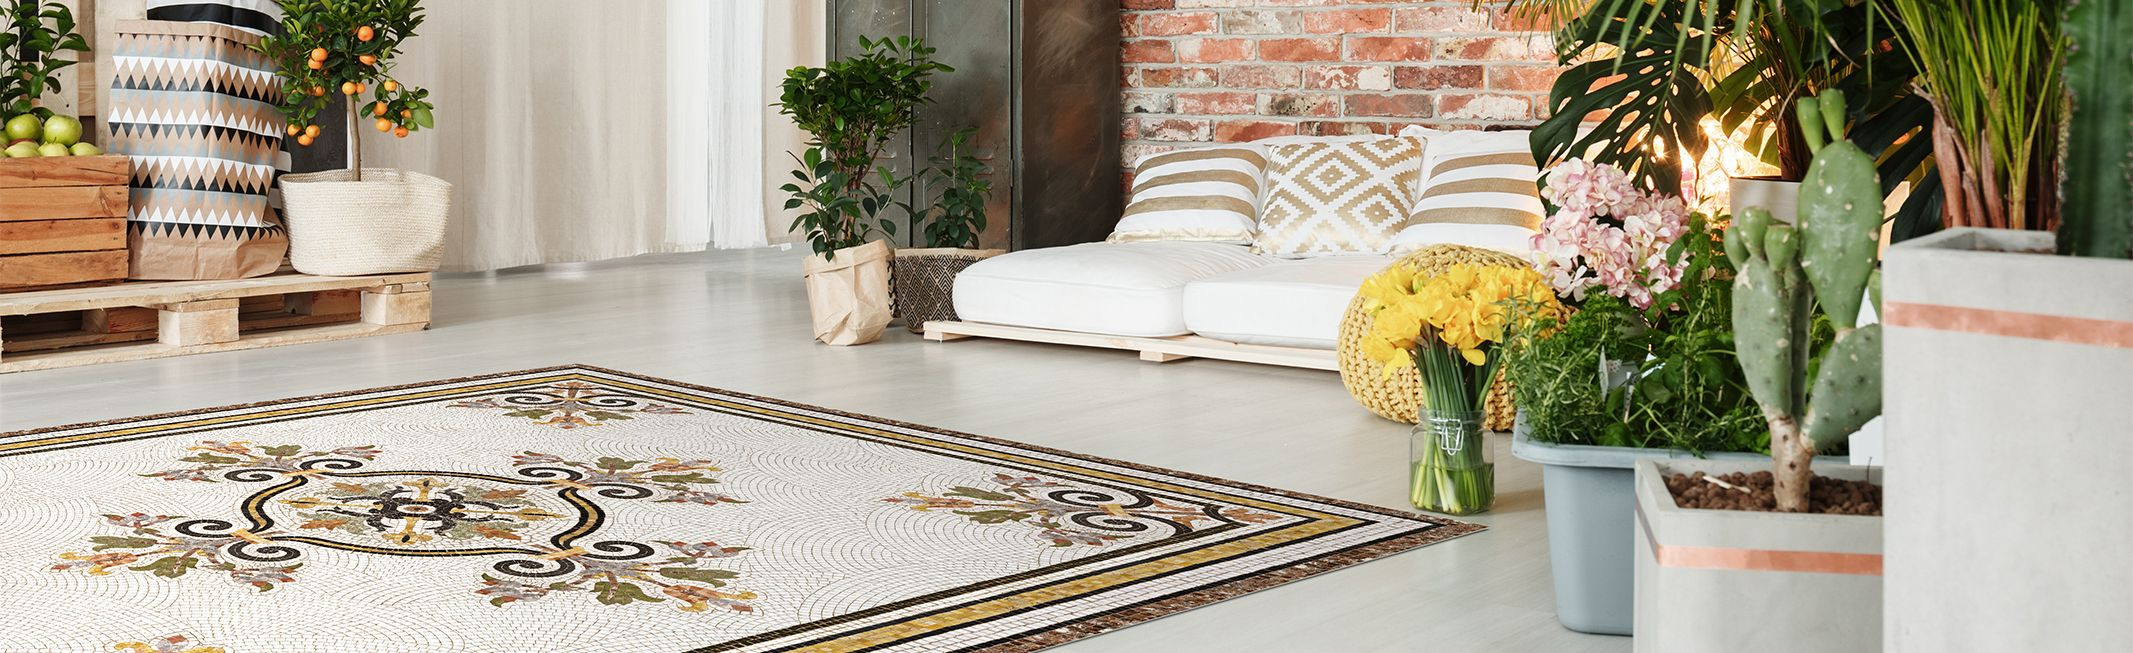 Vinyl rugs collection